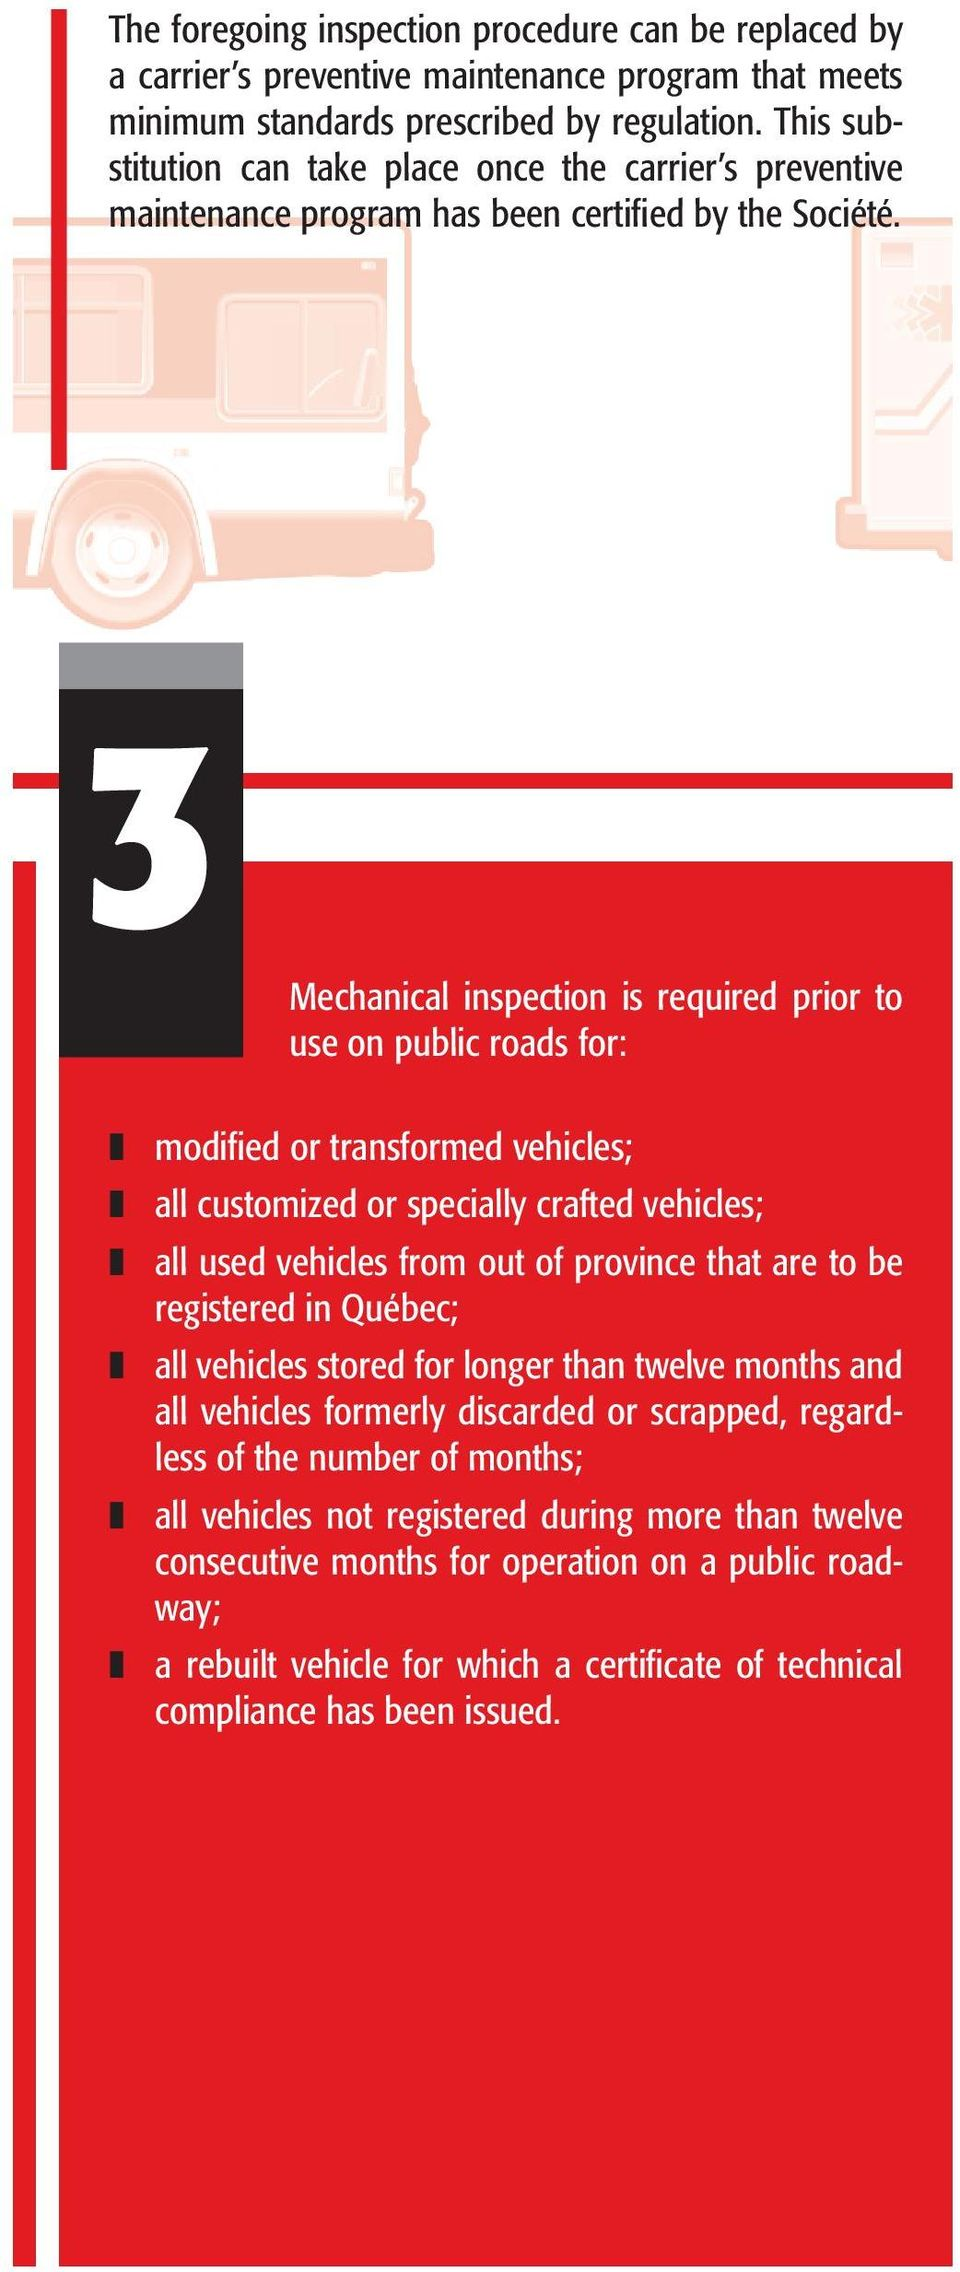 3 Mechanical inspection is required prior to use on public roads for: modified or transformed vehicles; all customized or specially crafted vehicles; all used vehicles from out of province that are